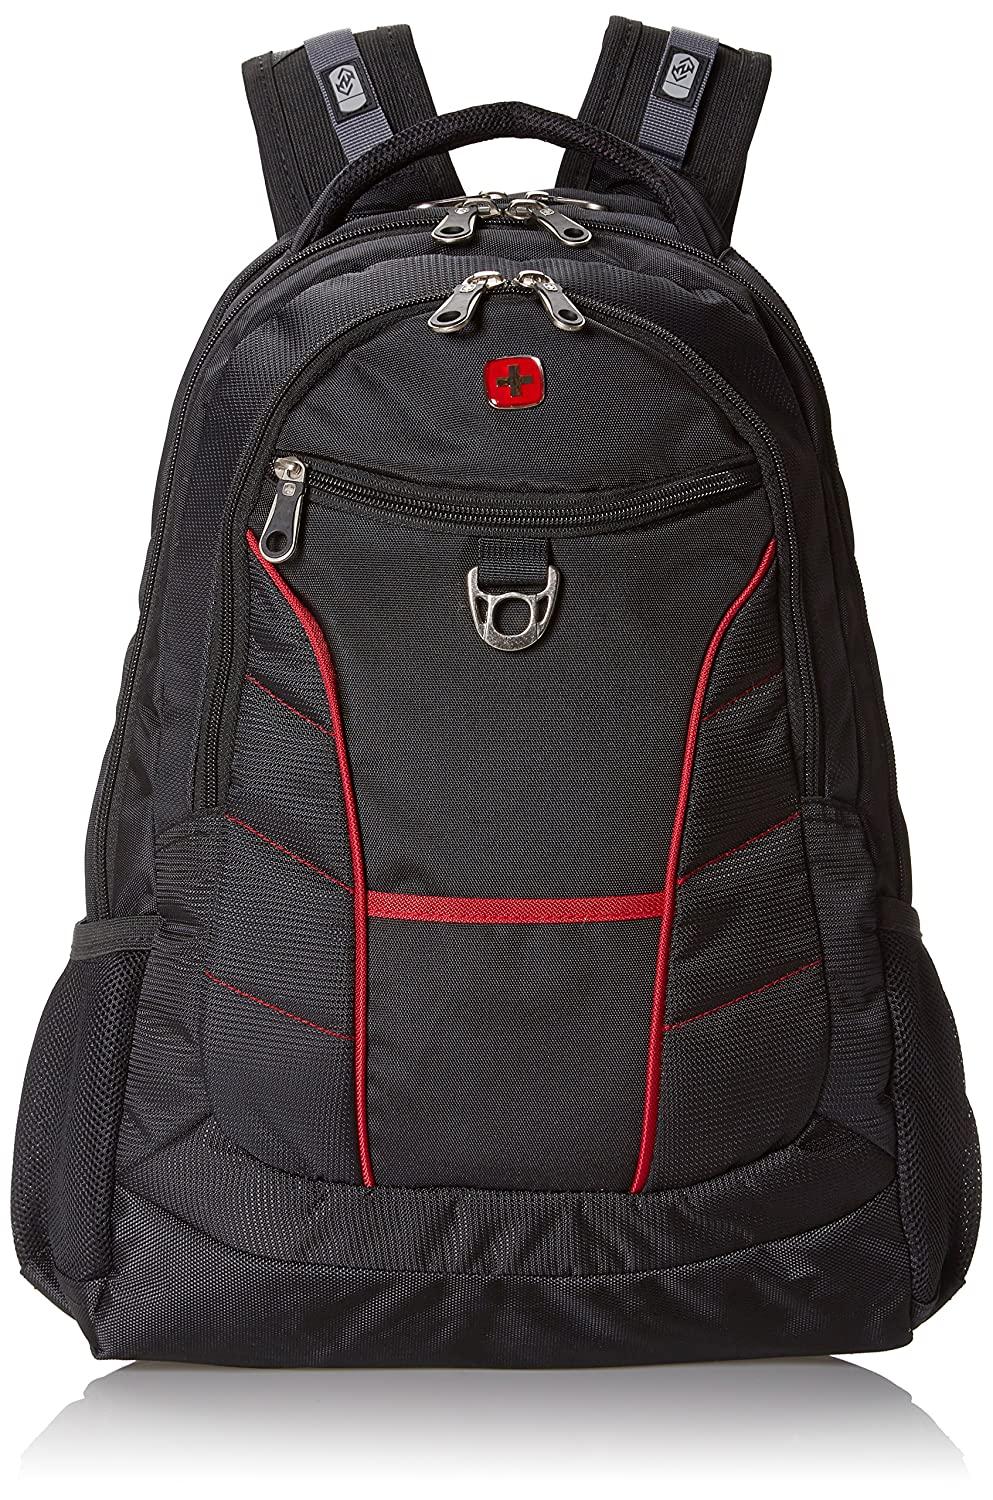 SwissGear SA1775 Black with Red Accents Laptop Computer Backpack - Fits Most 15 Inch Laptops and Tablets